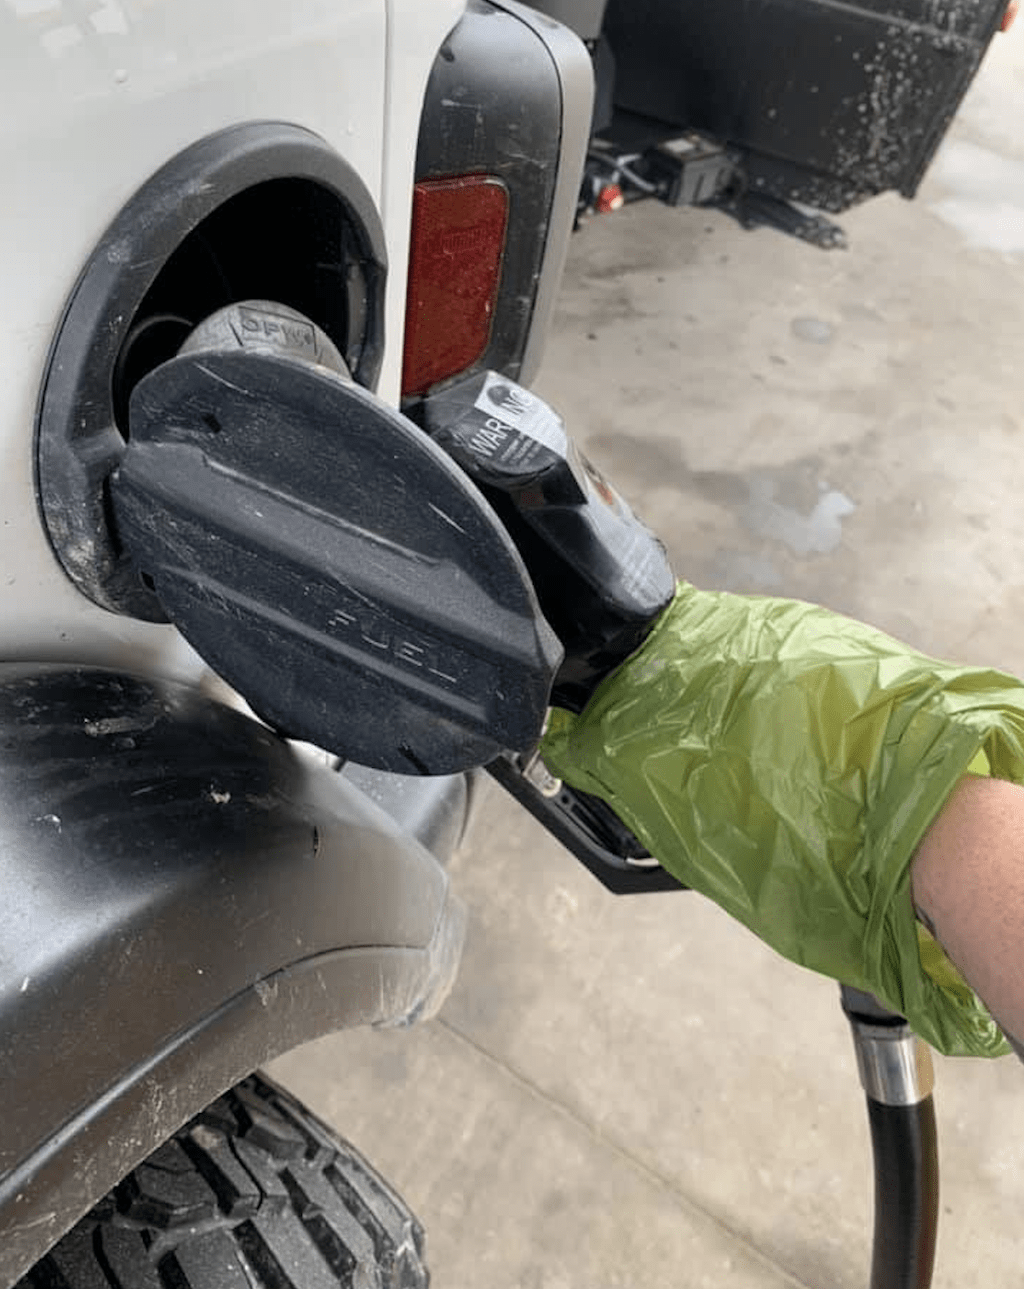 getting gas with gloves